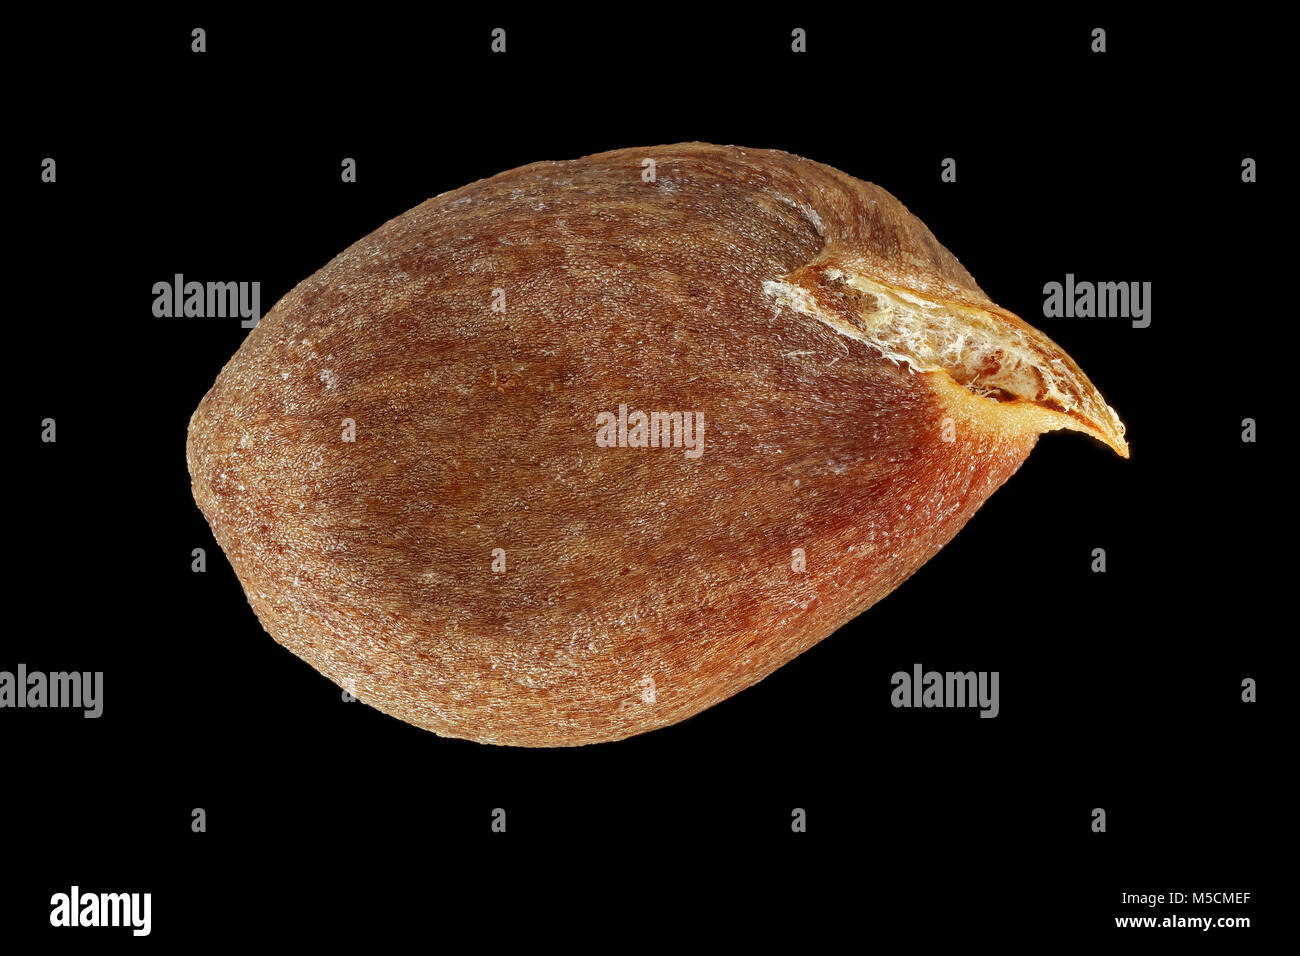 Malus domestica, Apple tree, Kultur-Apfelbaum, seed, close up, seed size 7-10 mm - Stock Image